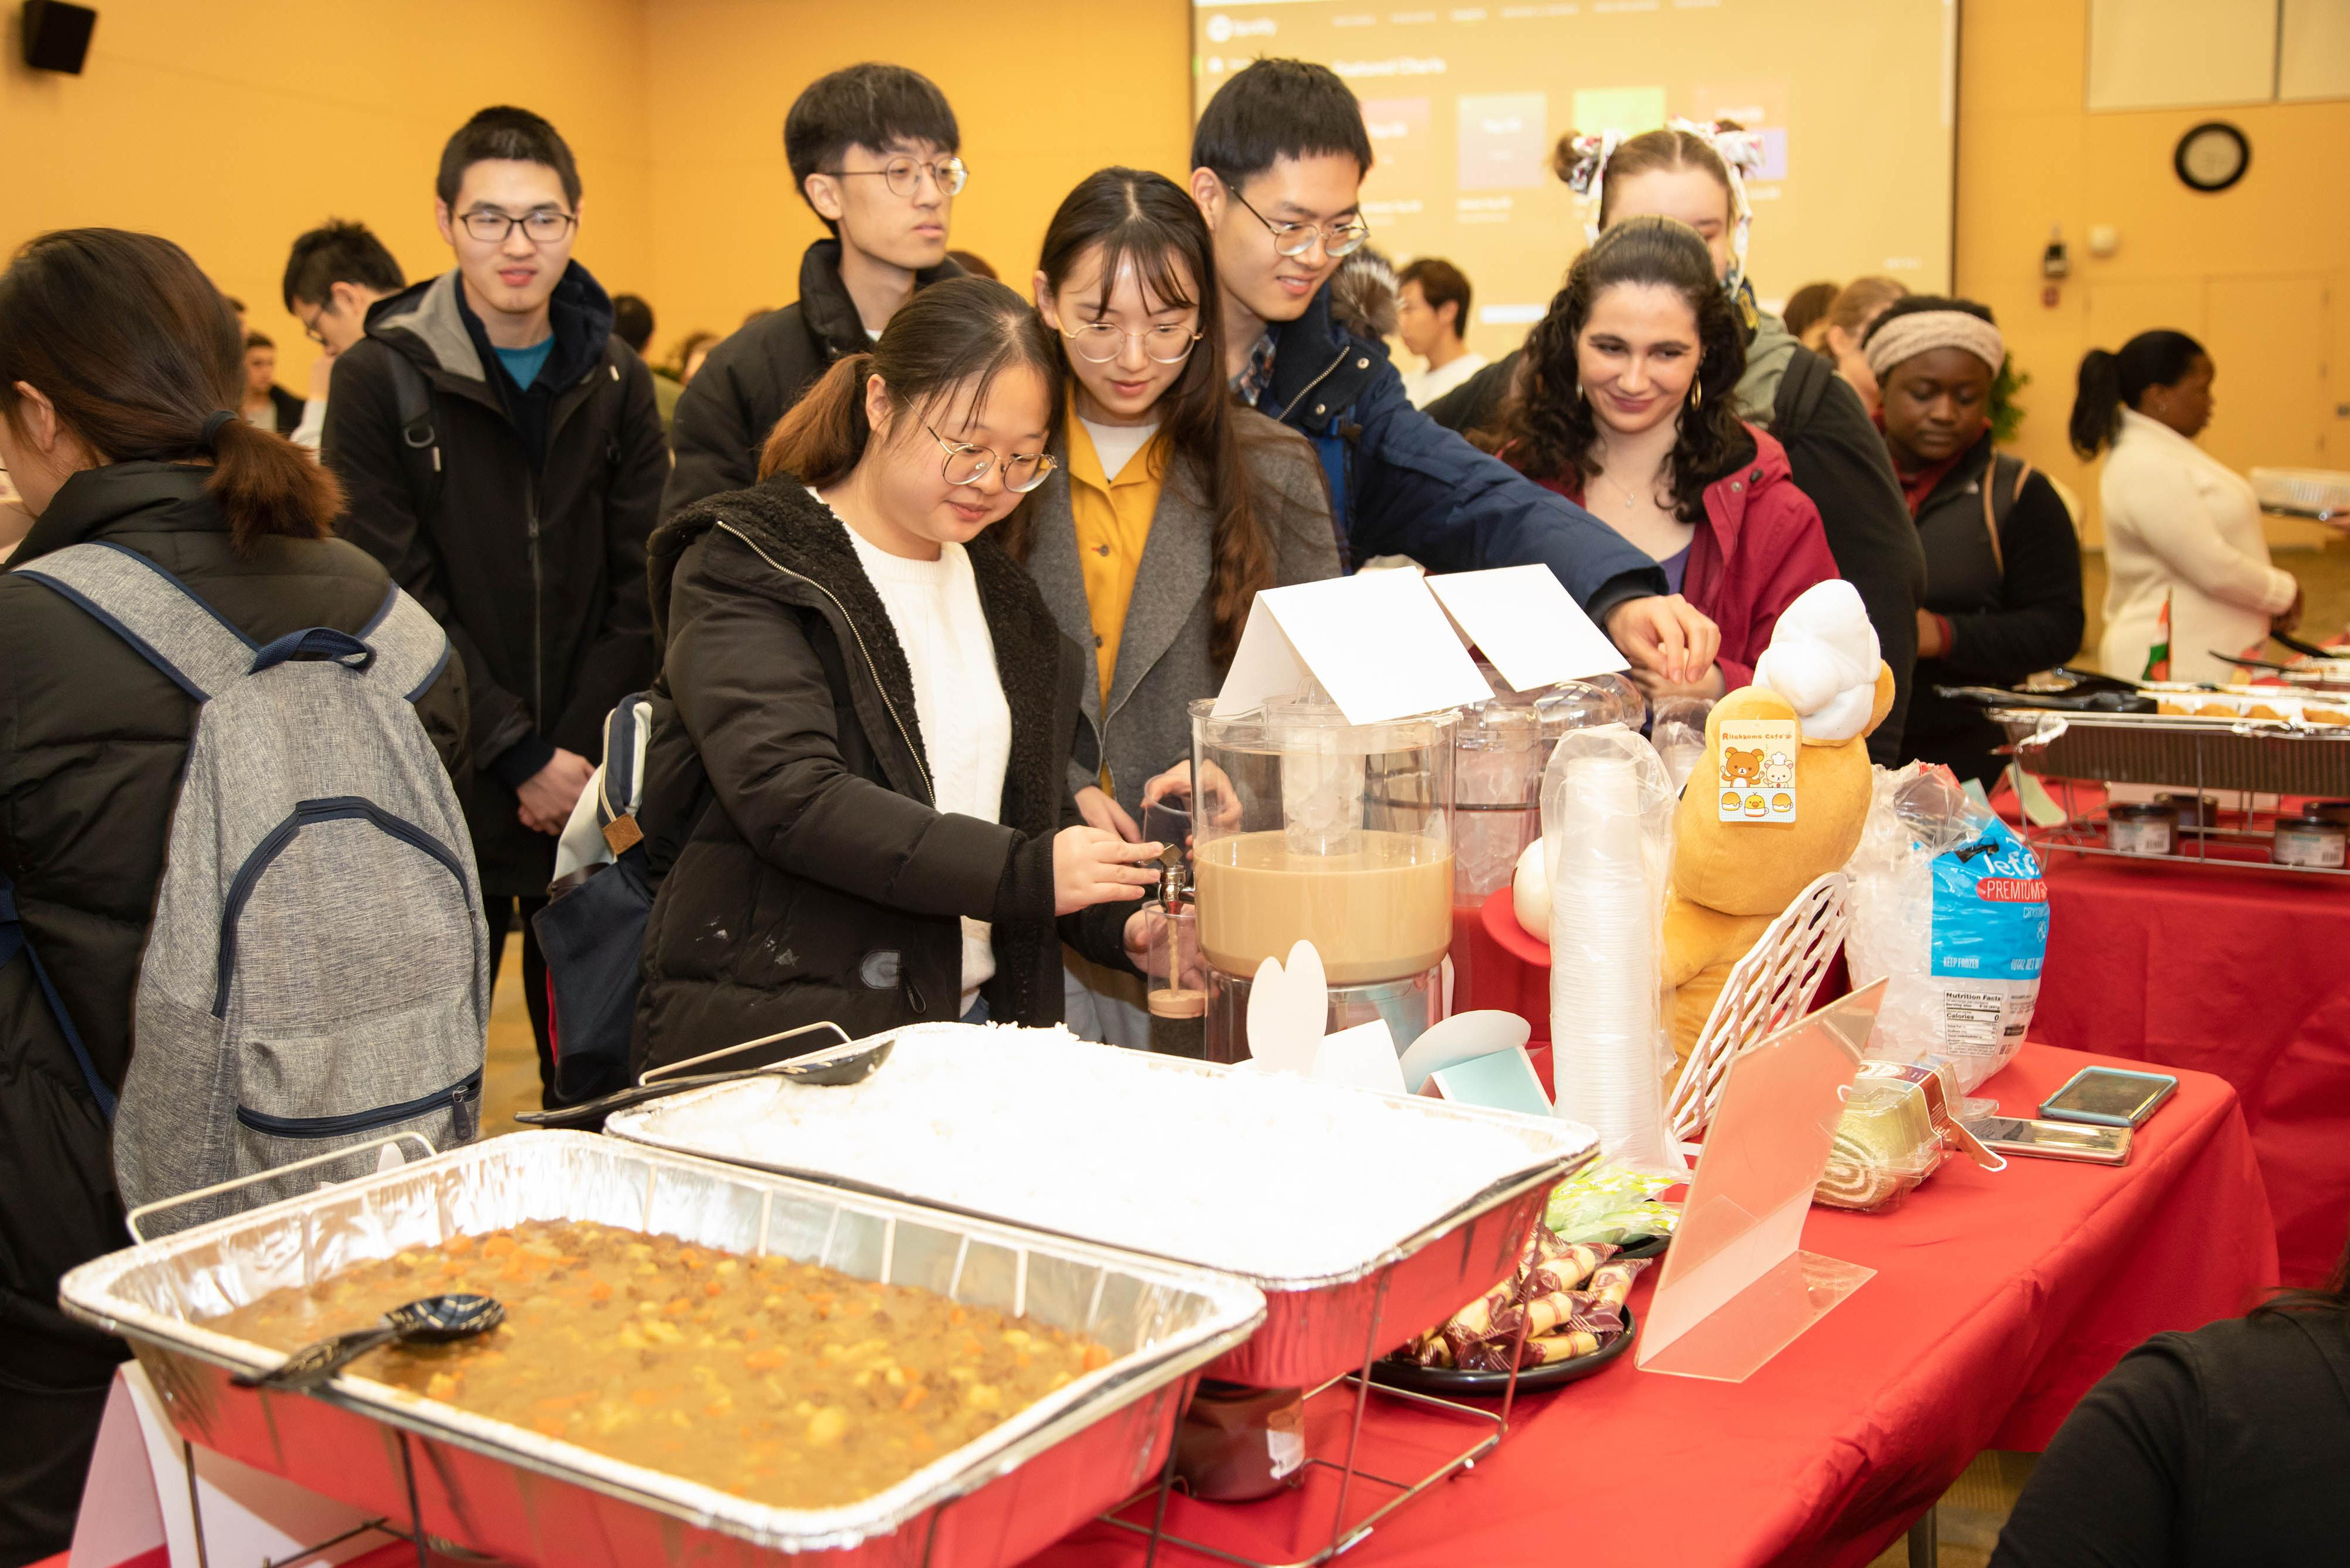 Group of students get food from a buffet table during Celebrating Cultures event